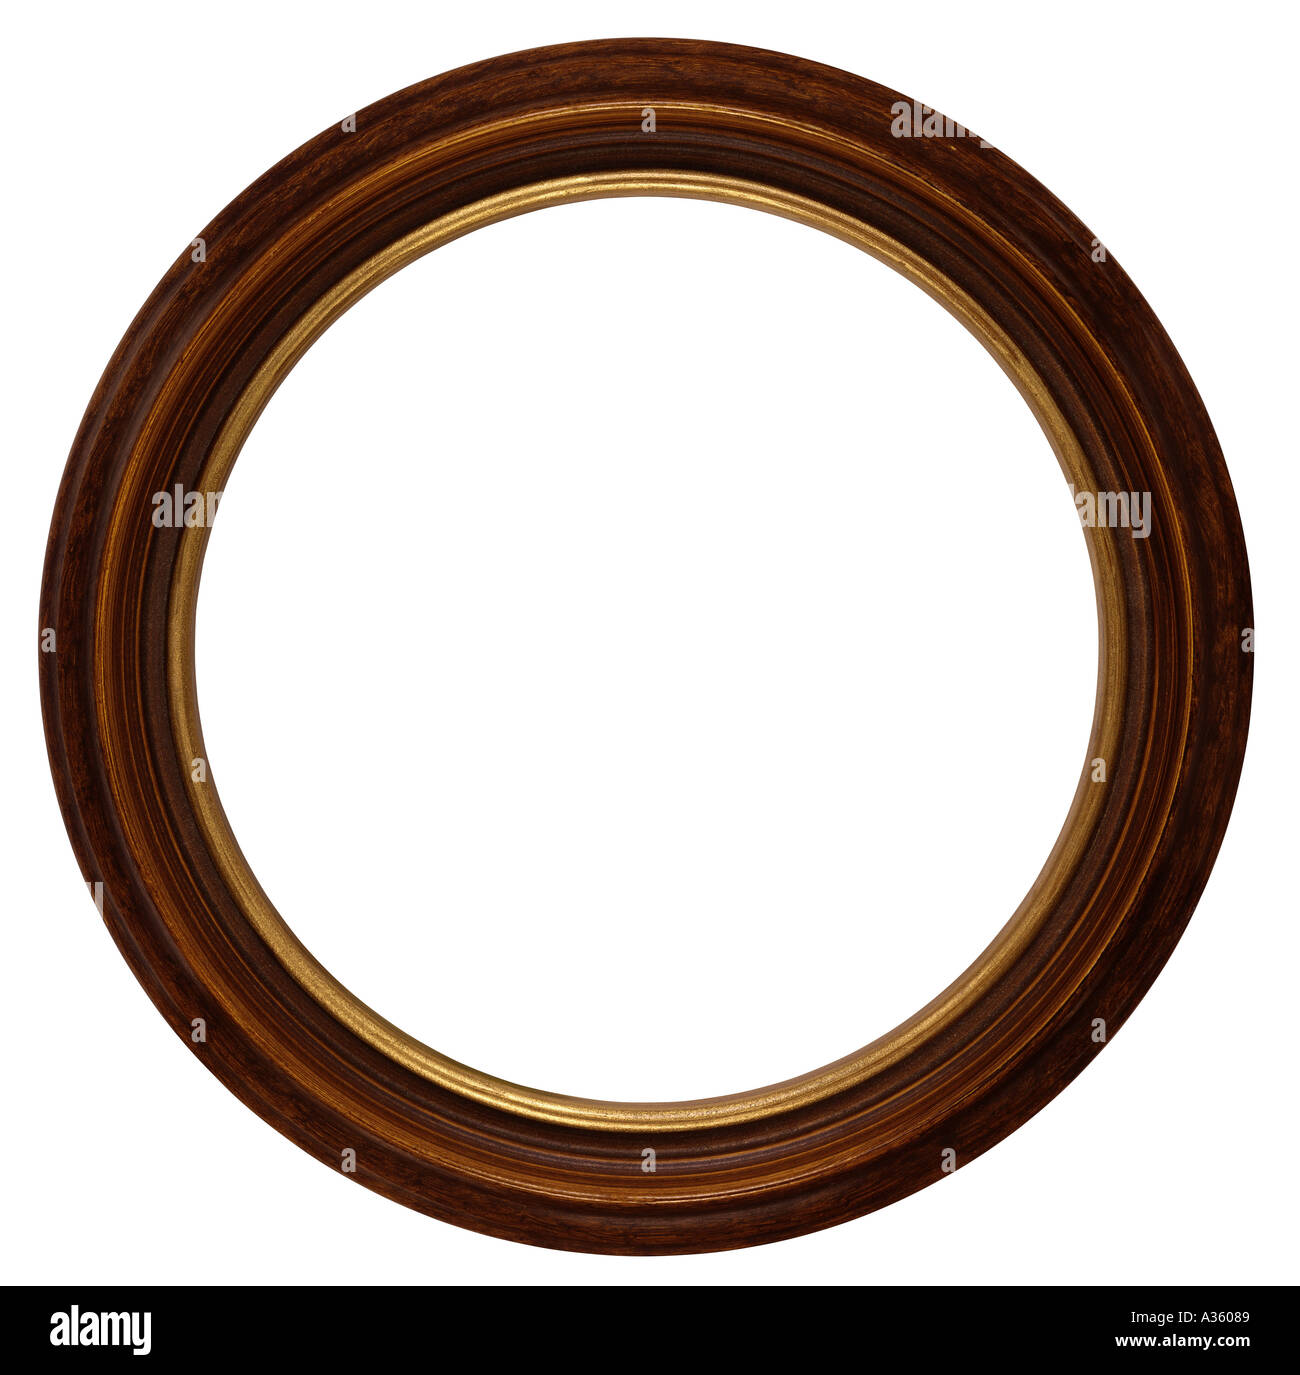 A Round Or Circular Antique Wooden Frame Stained In Dark Brown And Stock Photo Alamy